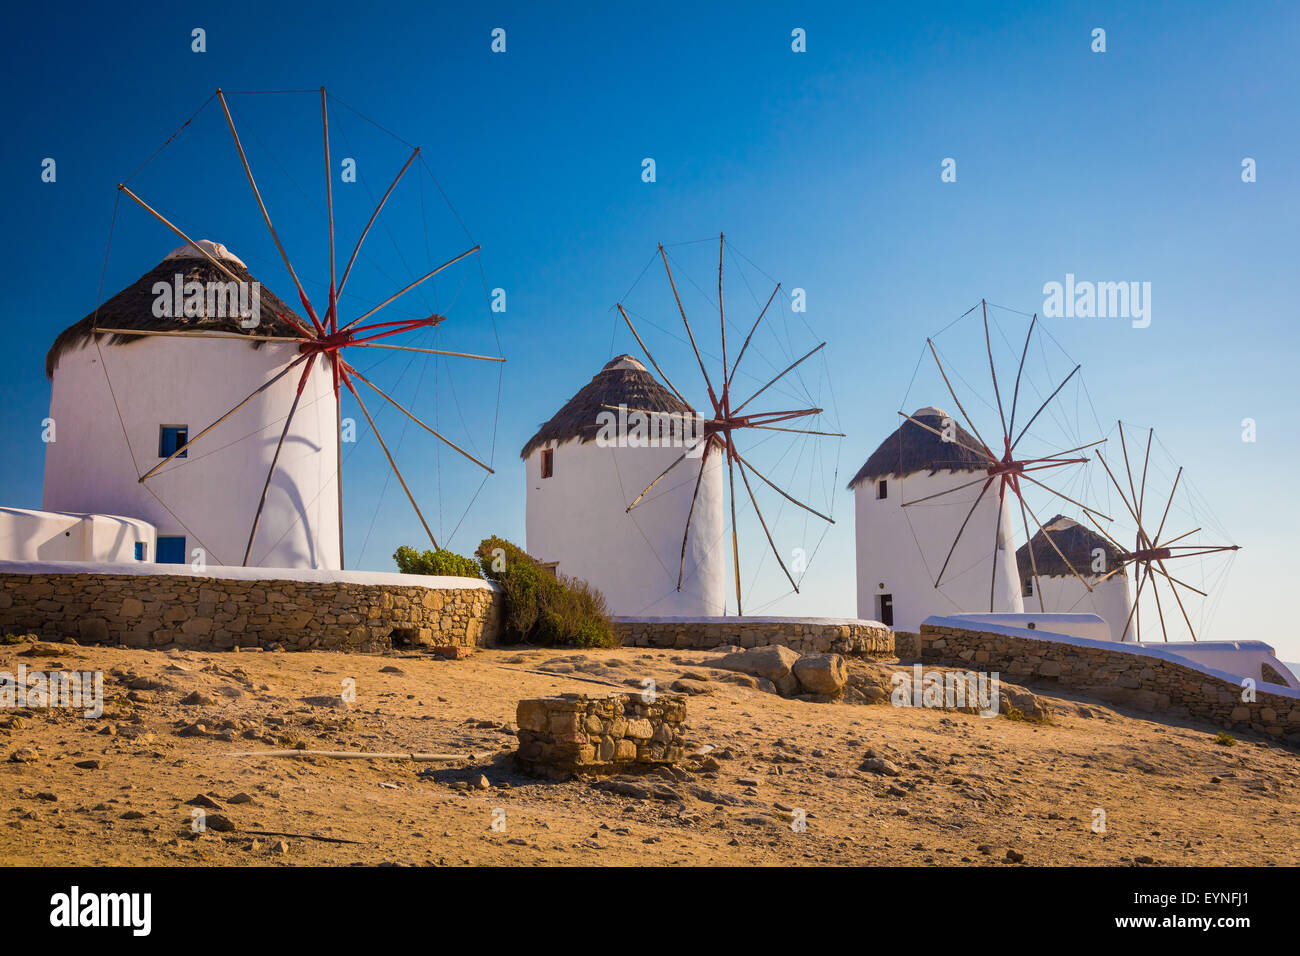 Mykonos windmills - The windmills are a defining feature of the Mykonian landscape. - Stock Image